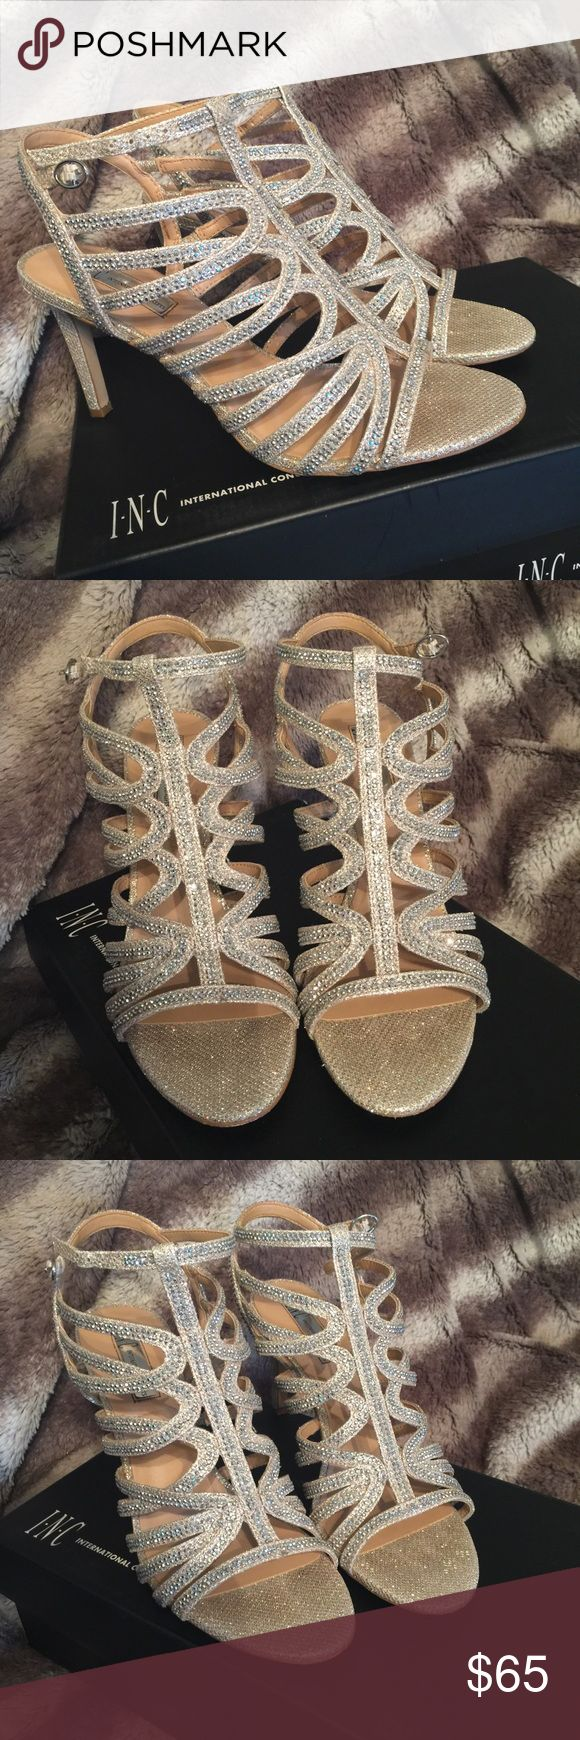 I.N.C silver rhinestone heels Only worn once! Gorgeous pair of heels!, size 9. Originally $100 from Macy's asking $65 INC International Concepts Shoes Heels